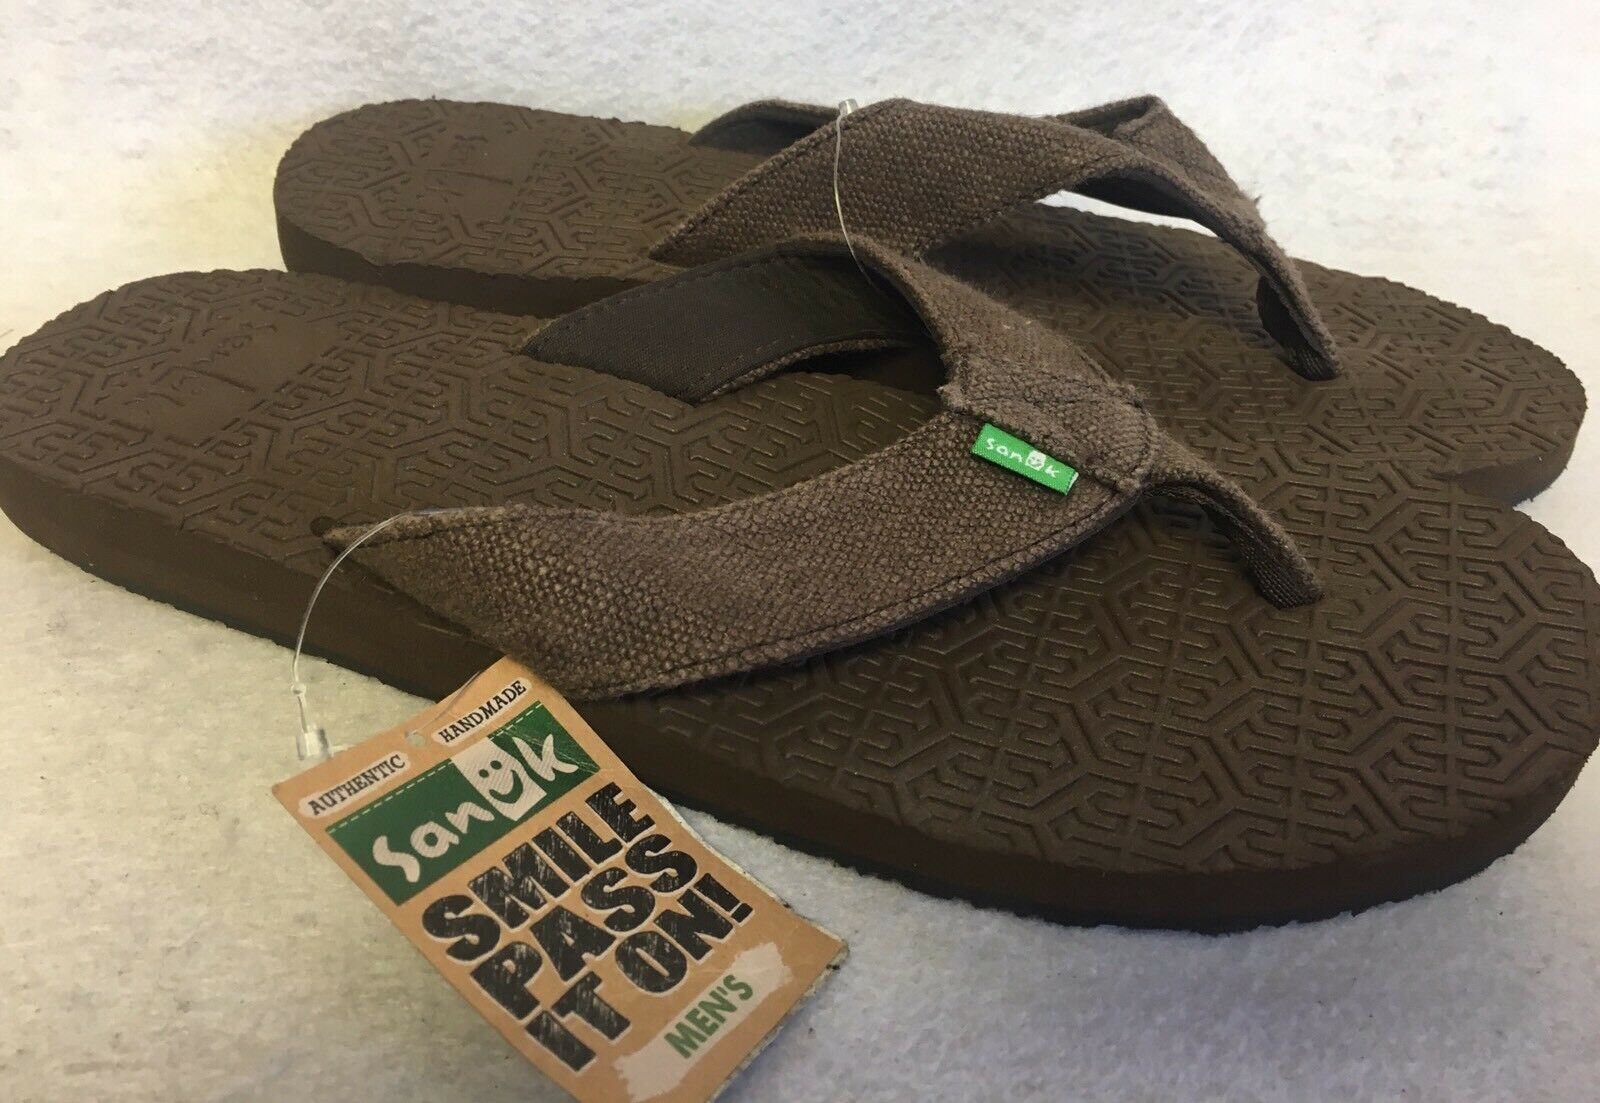 SANUK Flip Flops OG SQUOOSH BROWN Men's Flip Flop Thong Sandal shoes Comfort